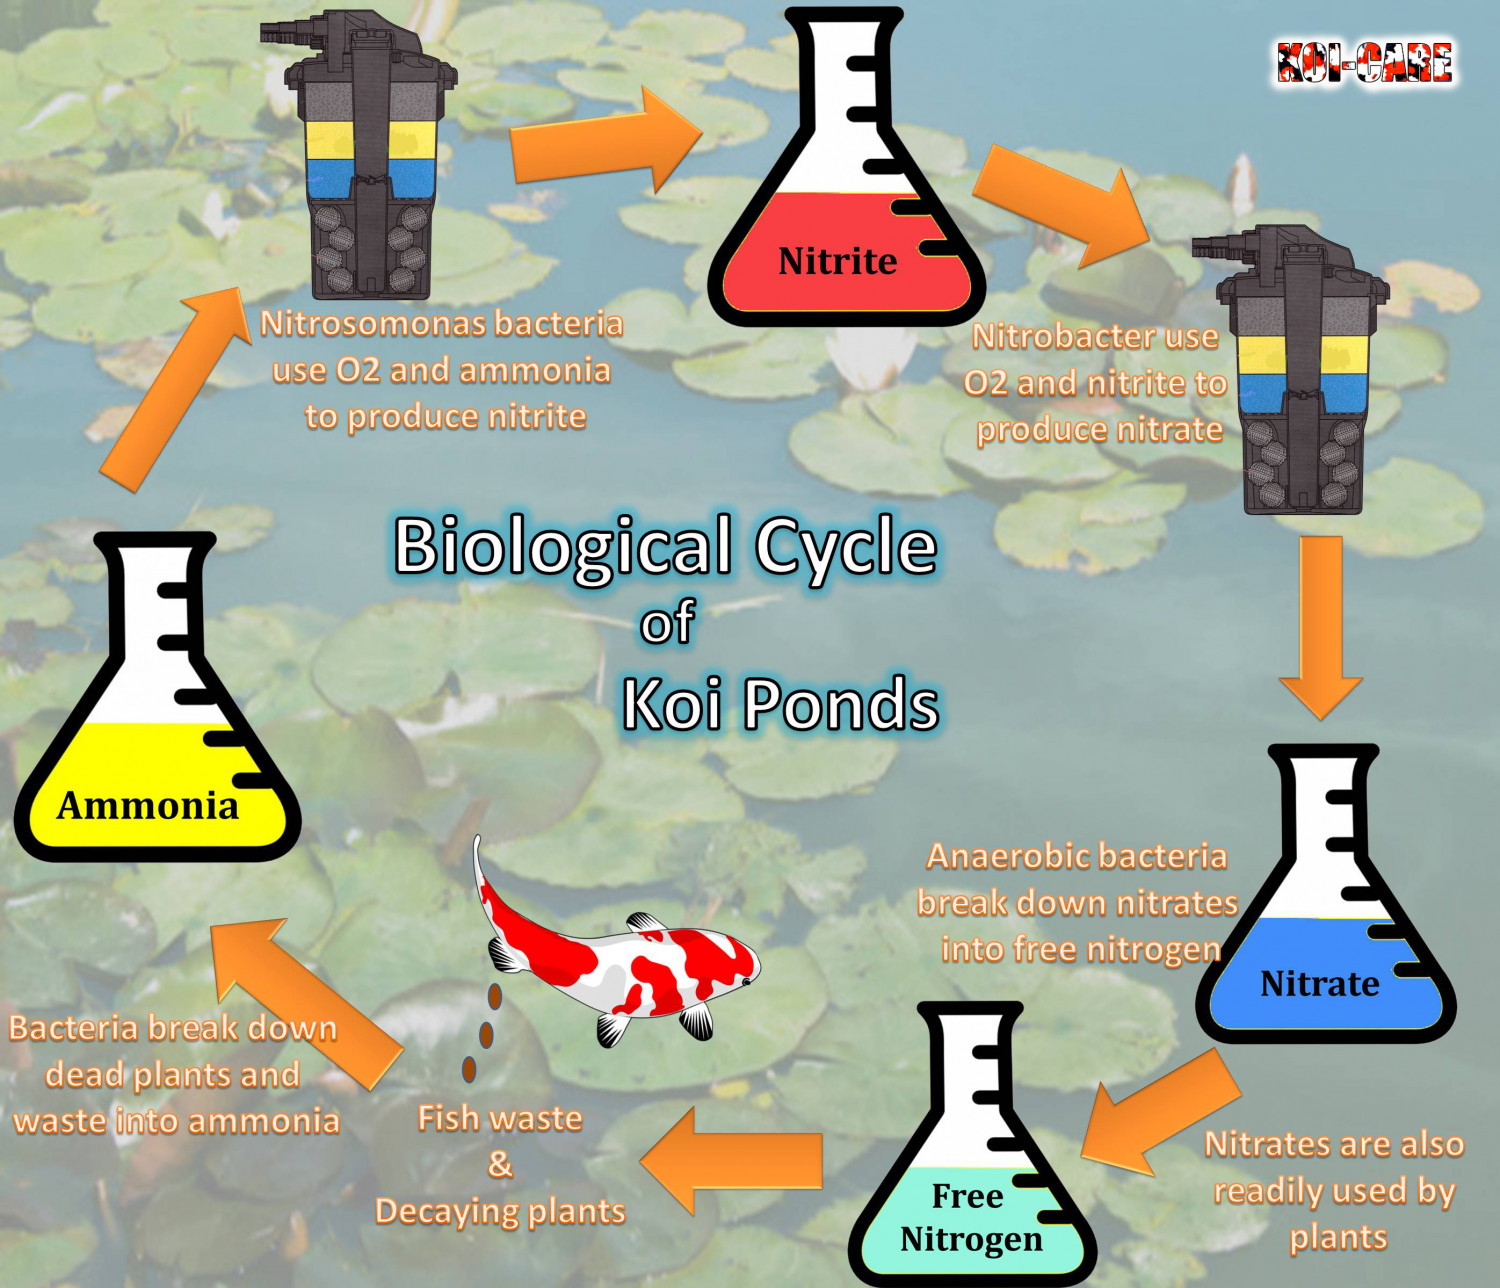 Biological Cycle of Koi Ponds Infographic